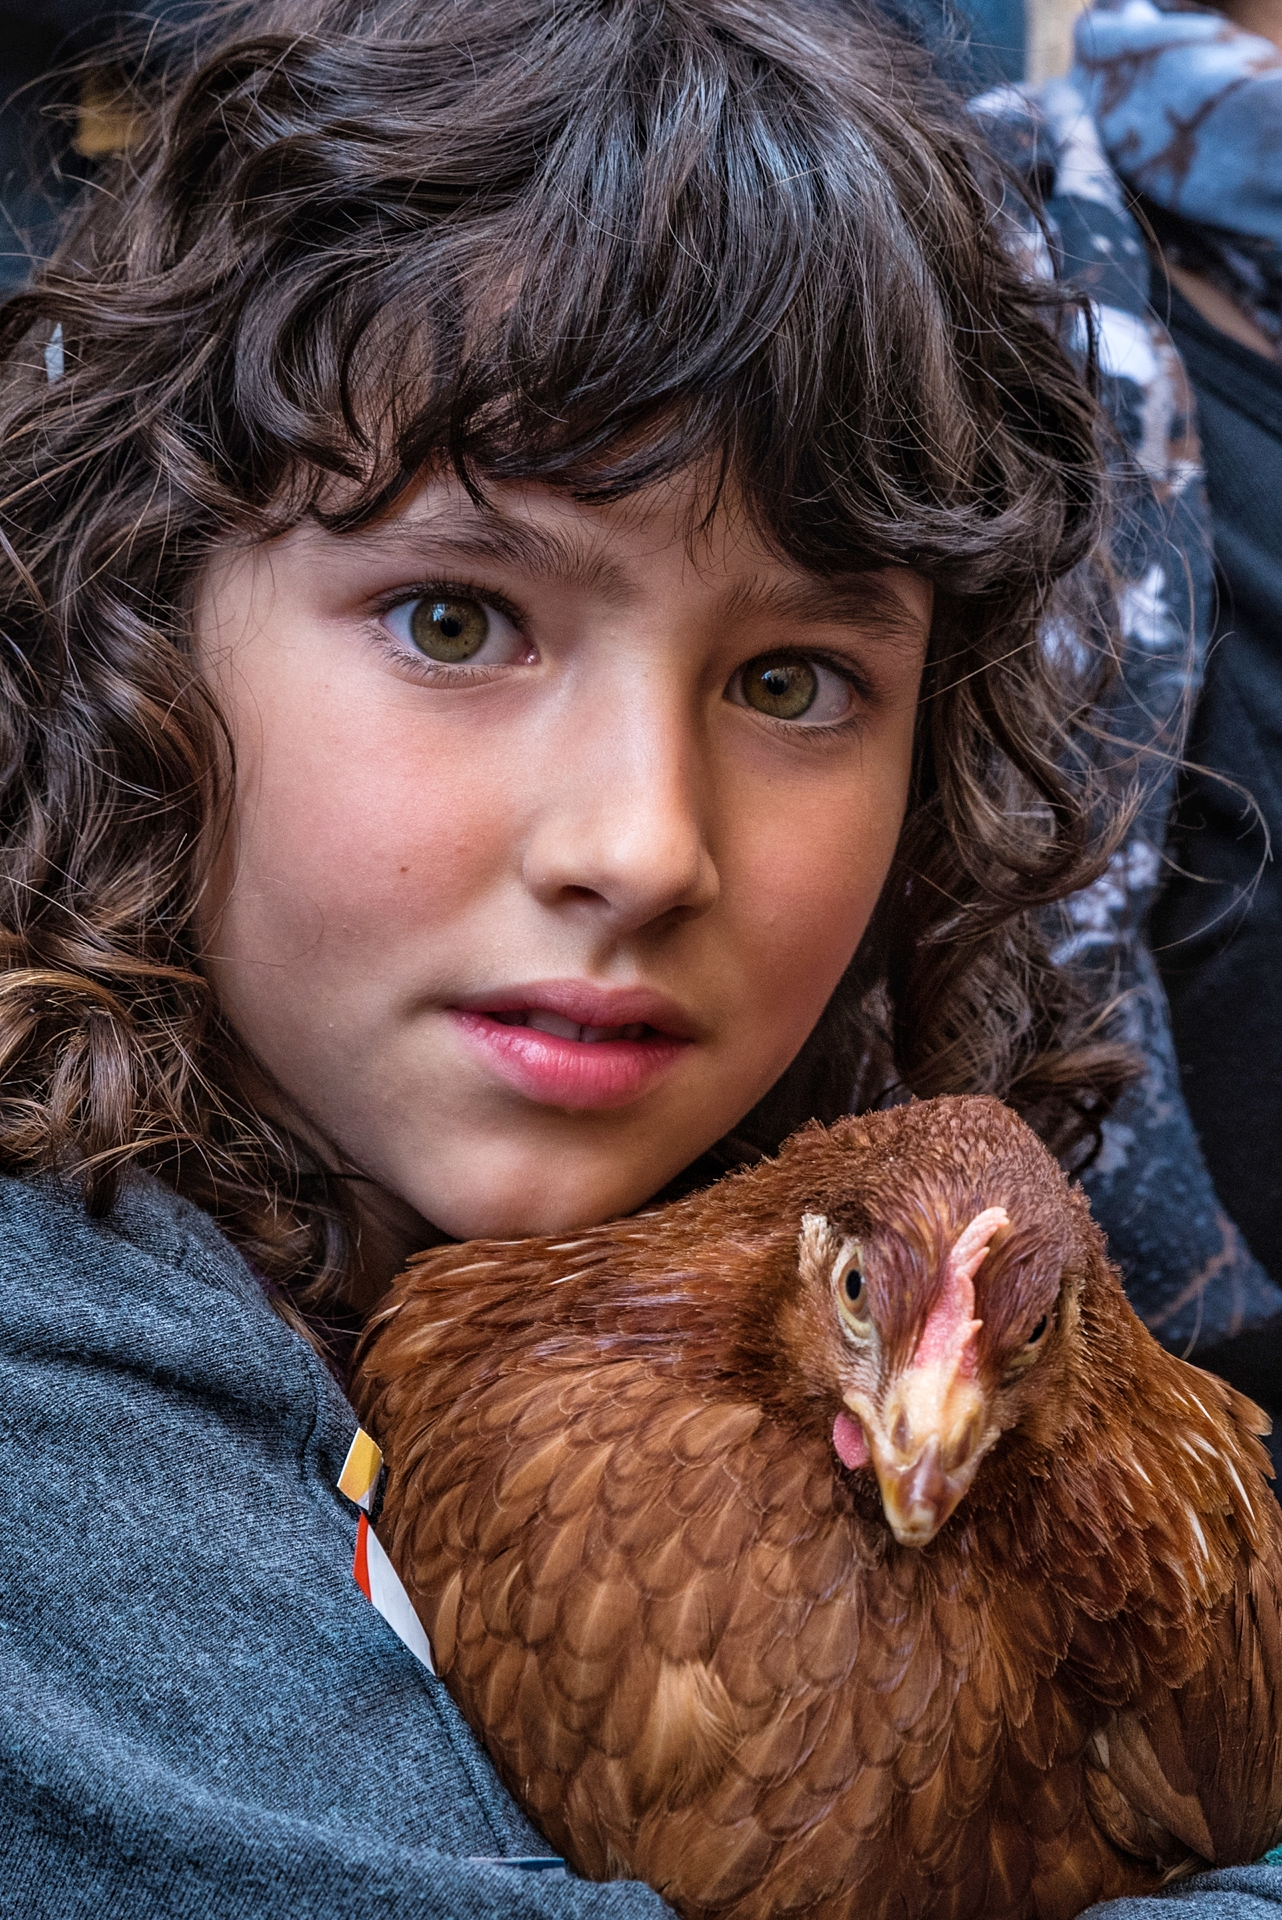 The little girl with the hen ...